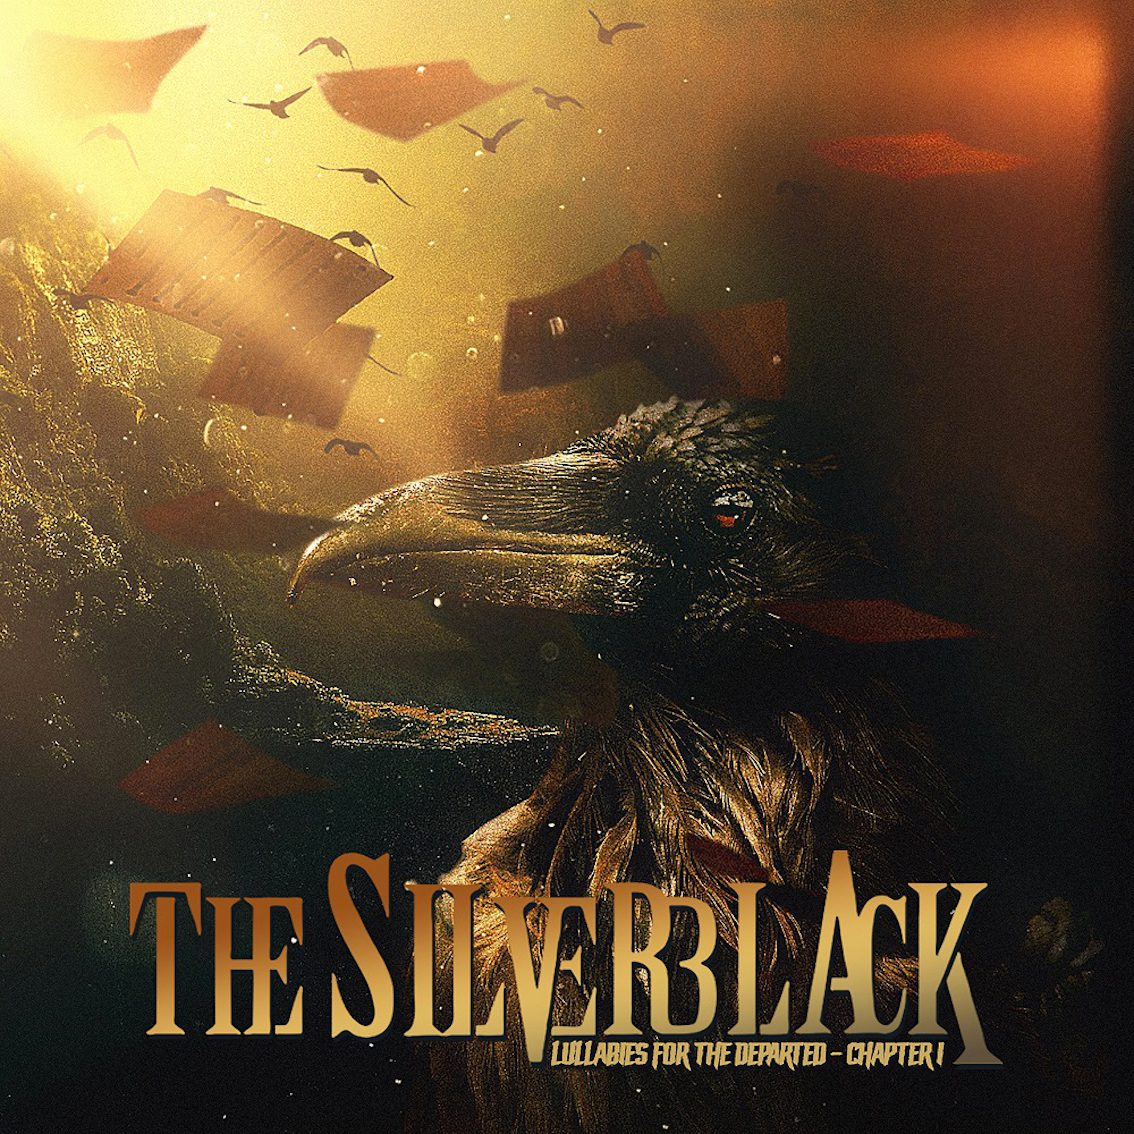 Industrial metal act The Silverblack postpone new album but release new acoustic EP and video of the single 'Retaliation'